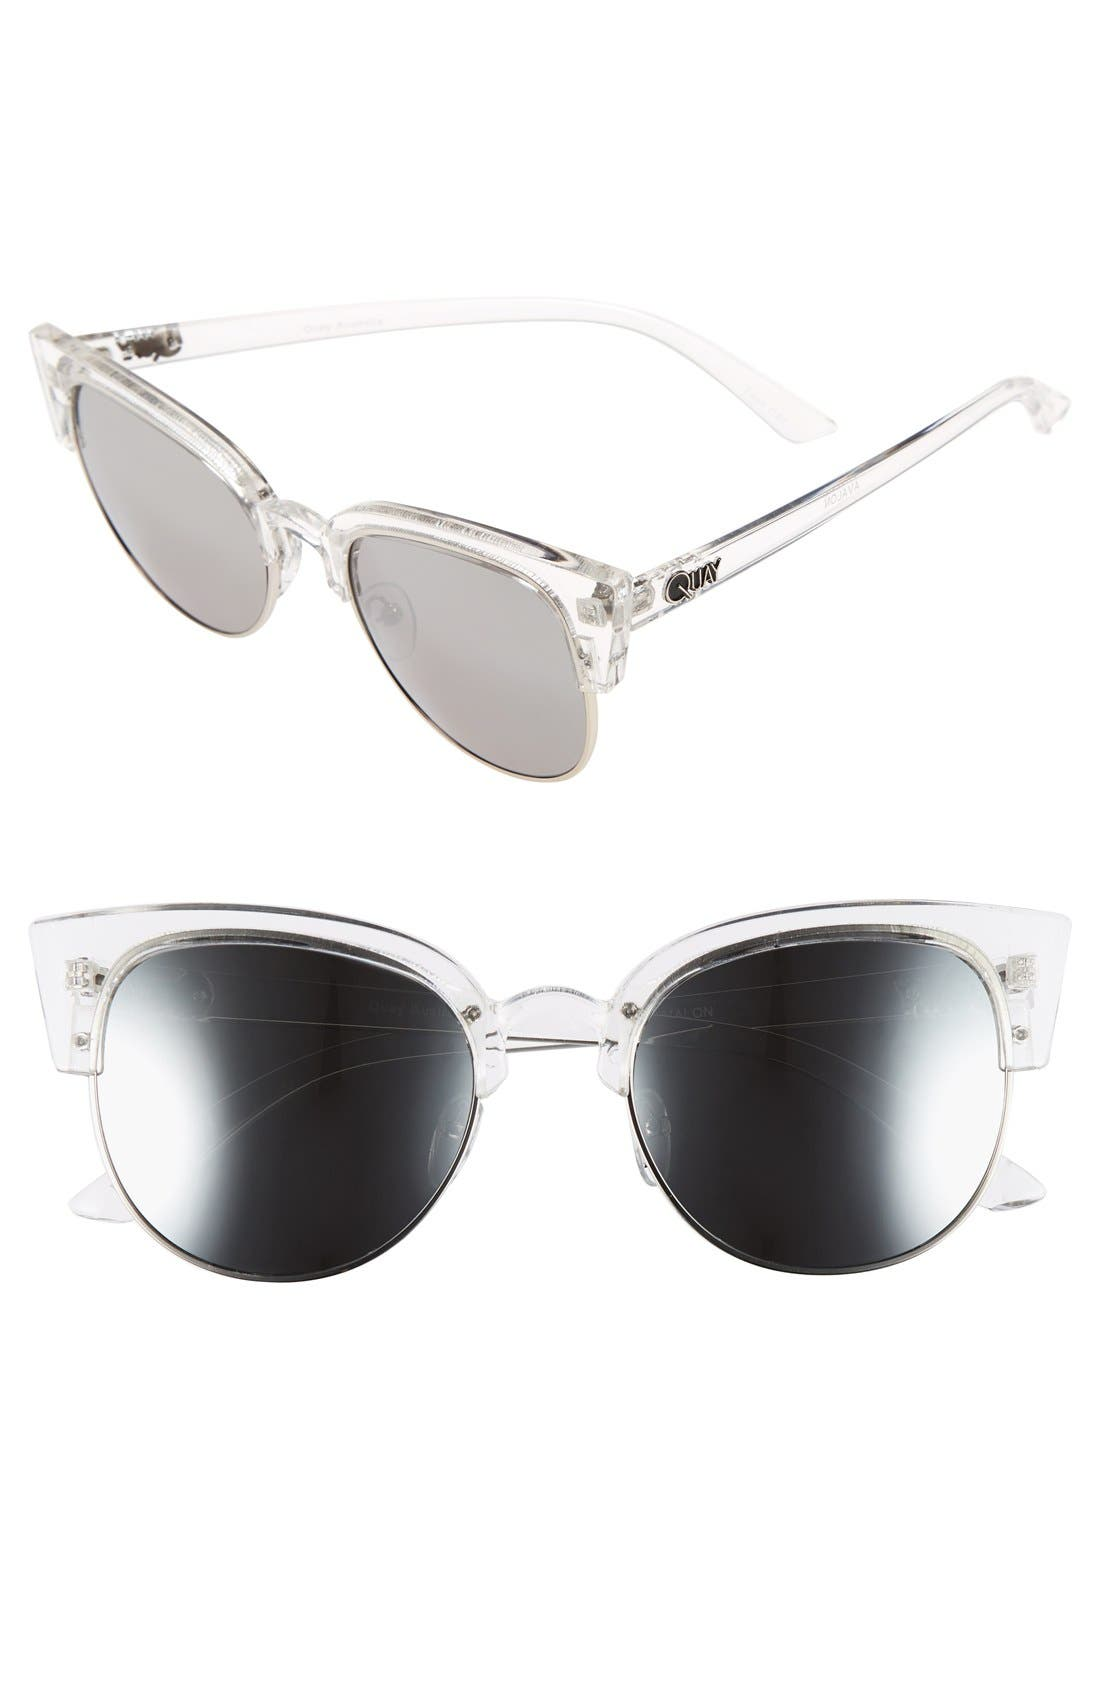 Main Image - Quay Australia 'Avalon' 55mm Retro Sunglasses